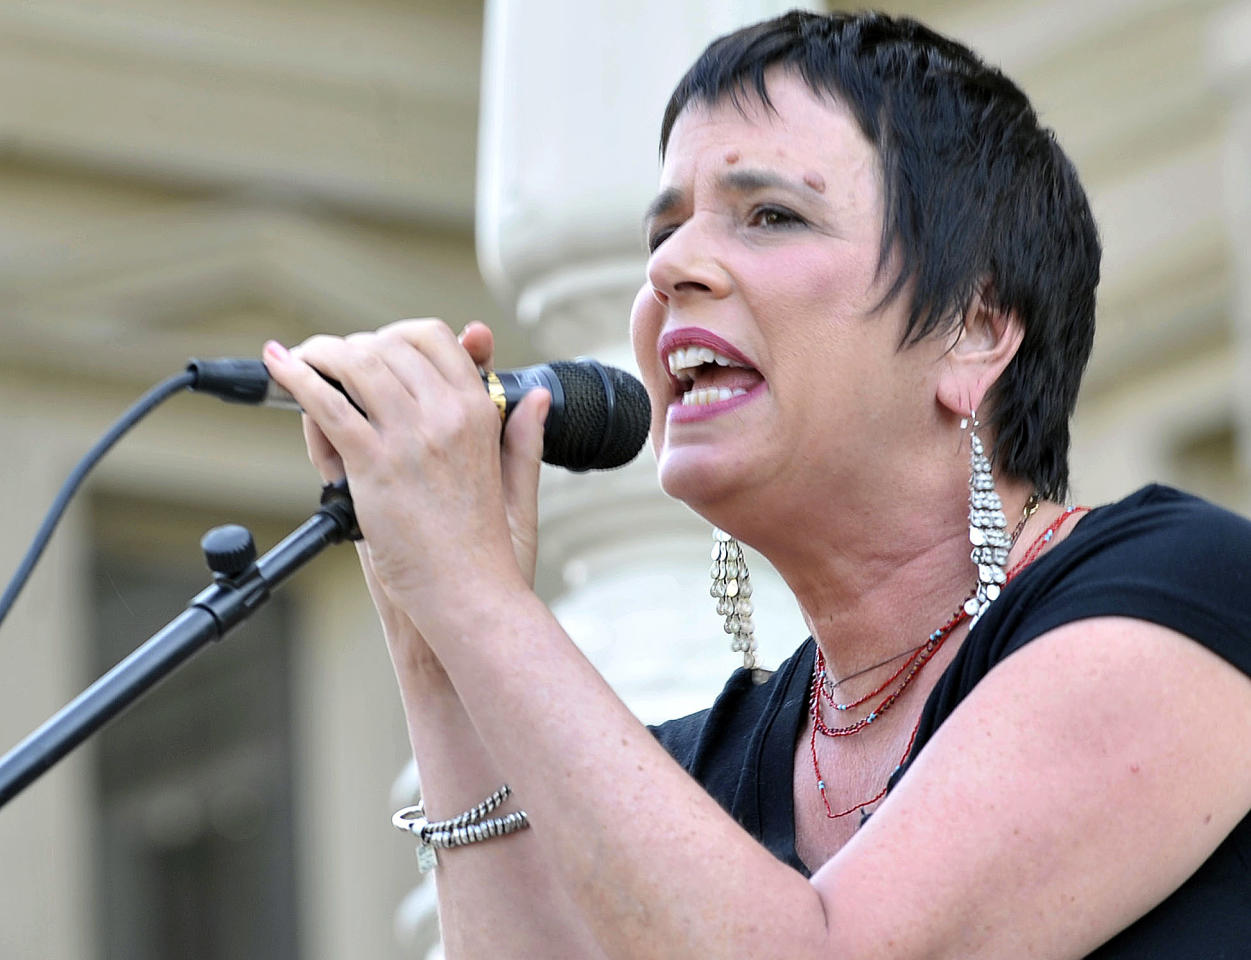 """Eve Ensle, author of """"The Vagina Monologues,"""" speaks during a performance of her play by Democratic state Rep. Lisa Brown, 10 other lawmakers and several actresses on the Michigan Statehouse steps, Monday, June 18, 2012, in Lansing, Mich. Brown, who says she was barred from speaking in the Michigan House because Republicans objected to her saying """"vagina"""" during debate over anti-abortion legislation, performed with help from author Ensler. (AP Photo/Detroit News, Dale G. Young)"""